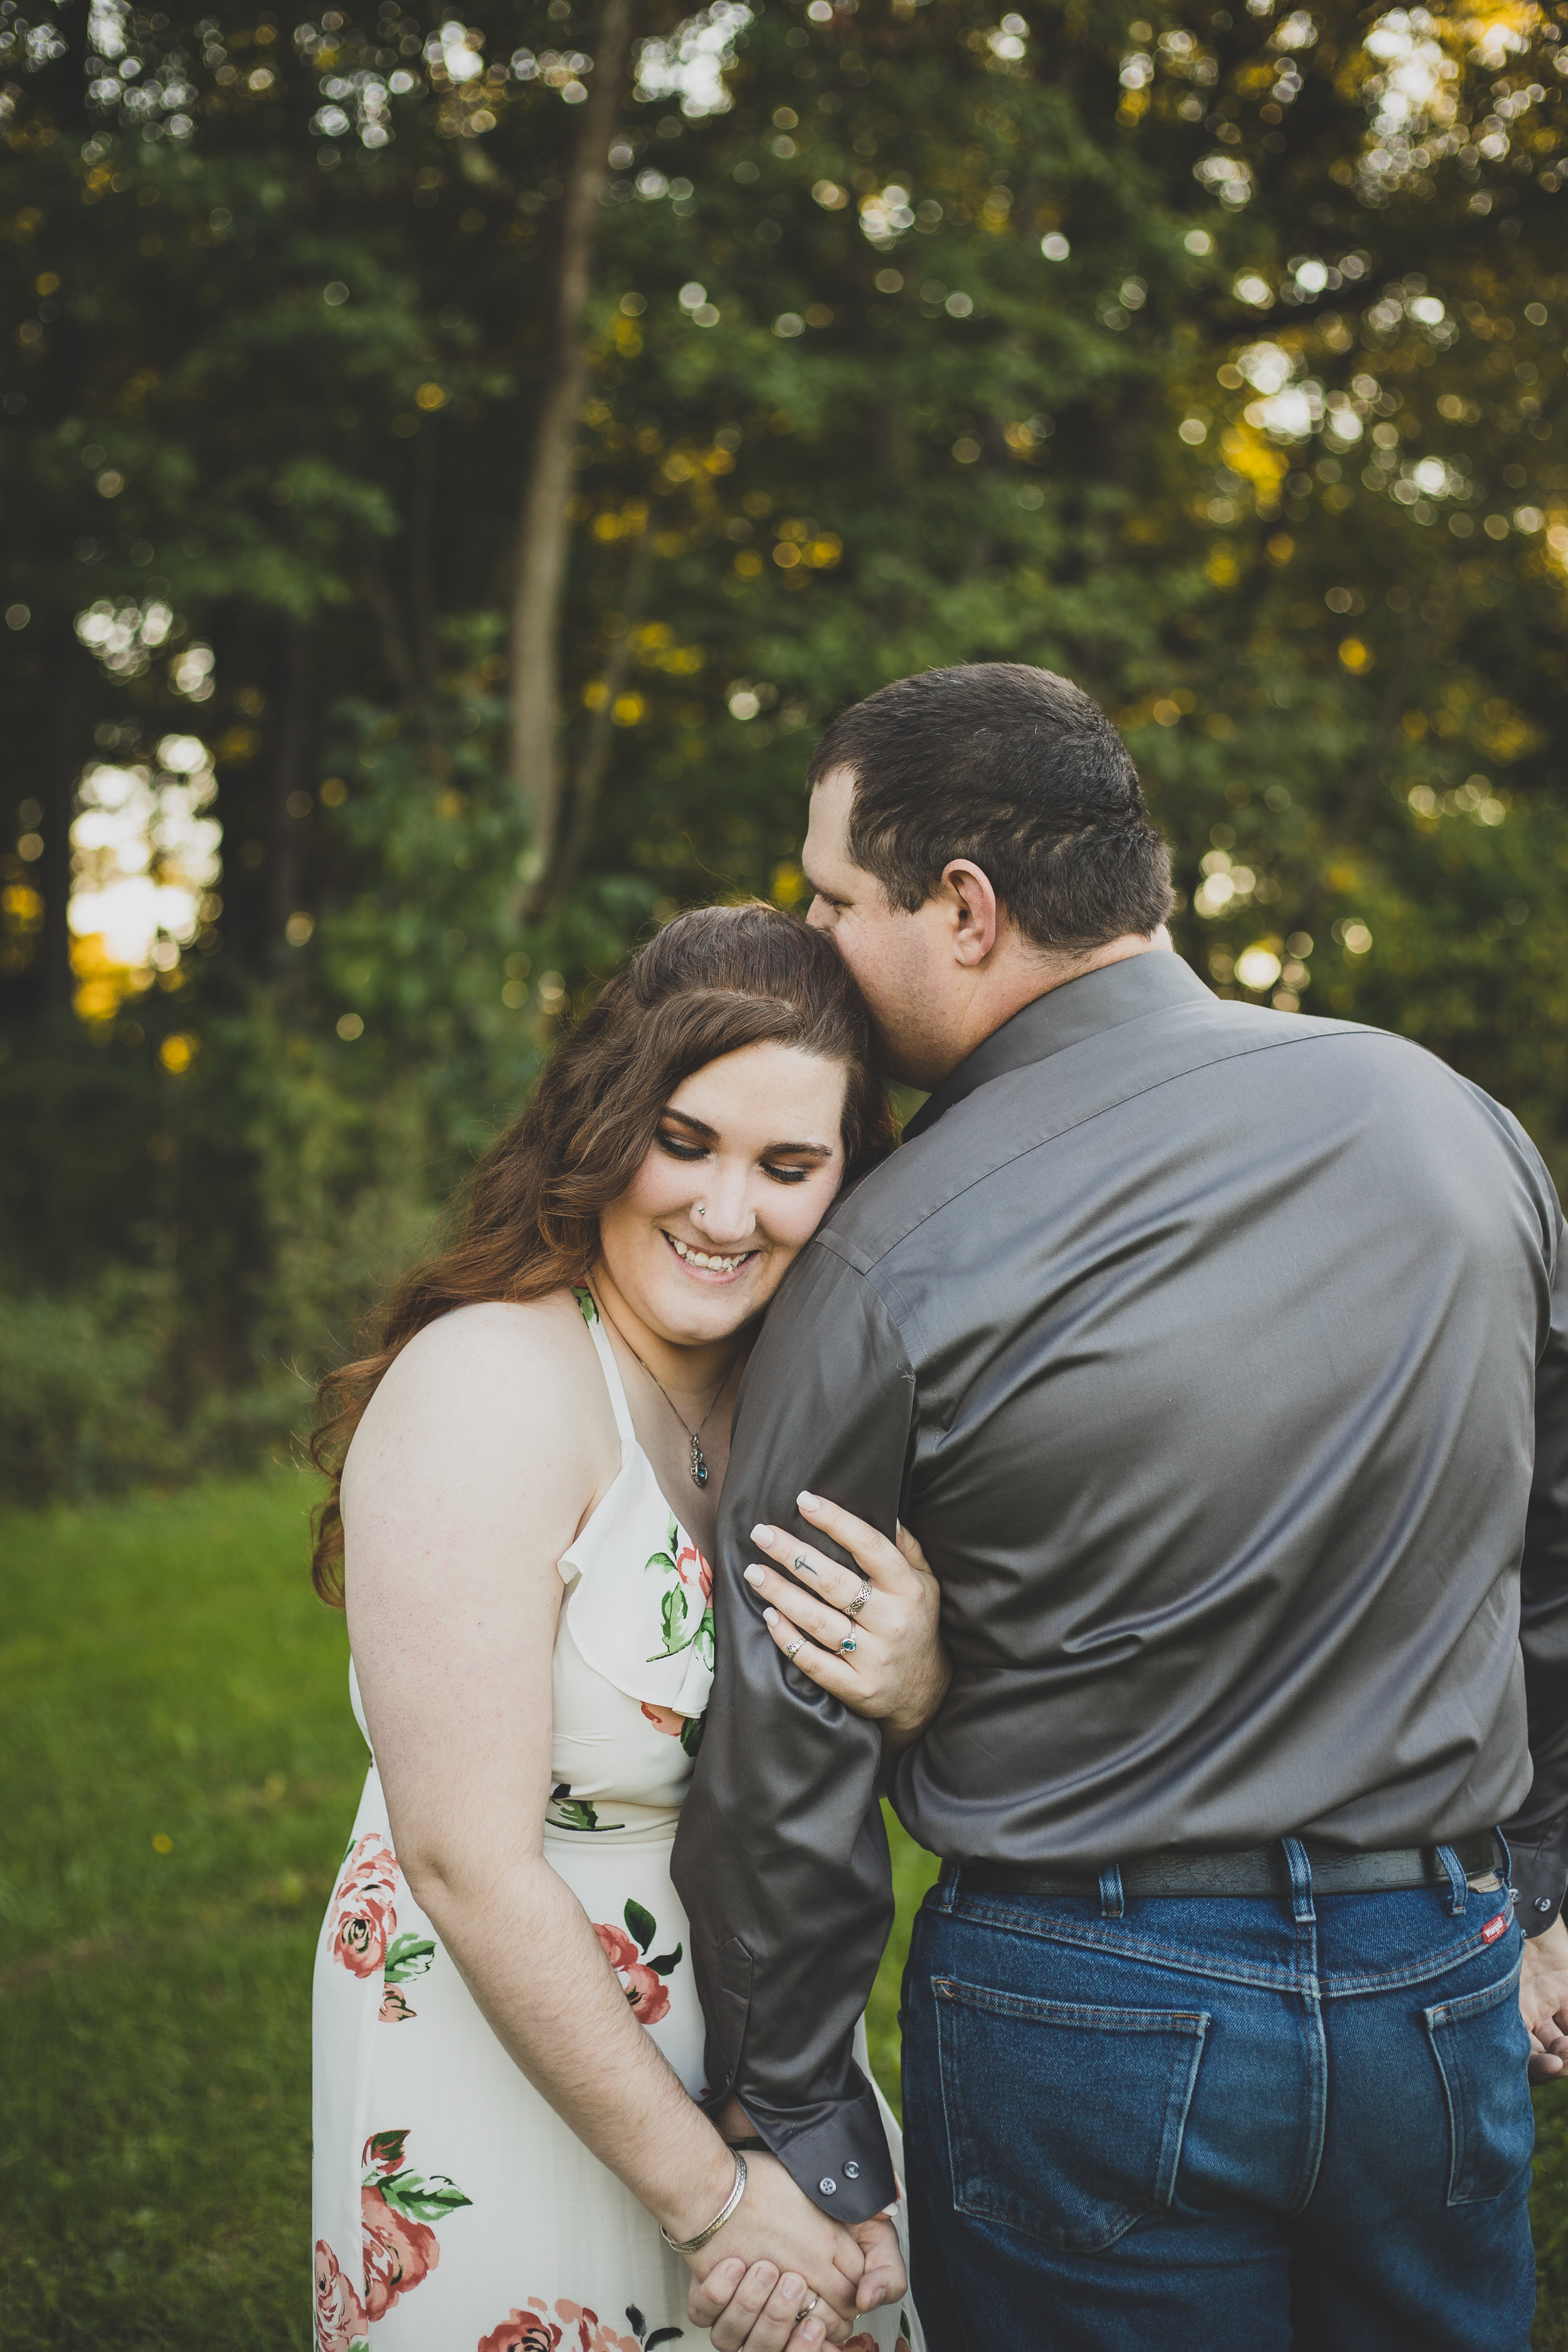 Michelle Carter Photography-Engagement Photography-Cuyahoga Valley National Park-9.jpg